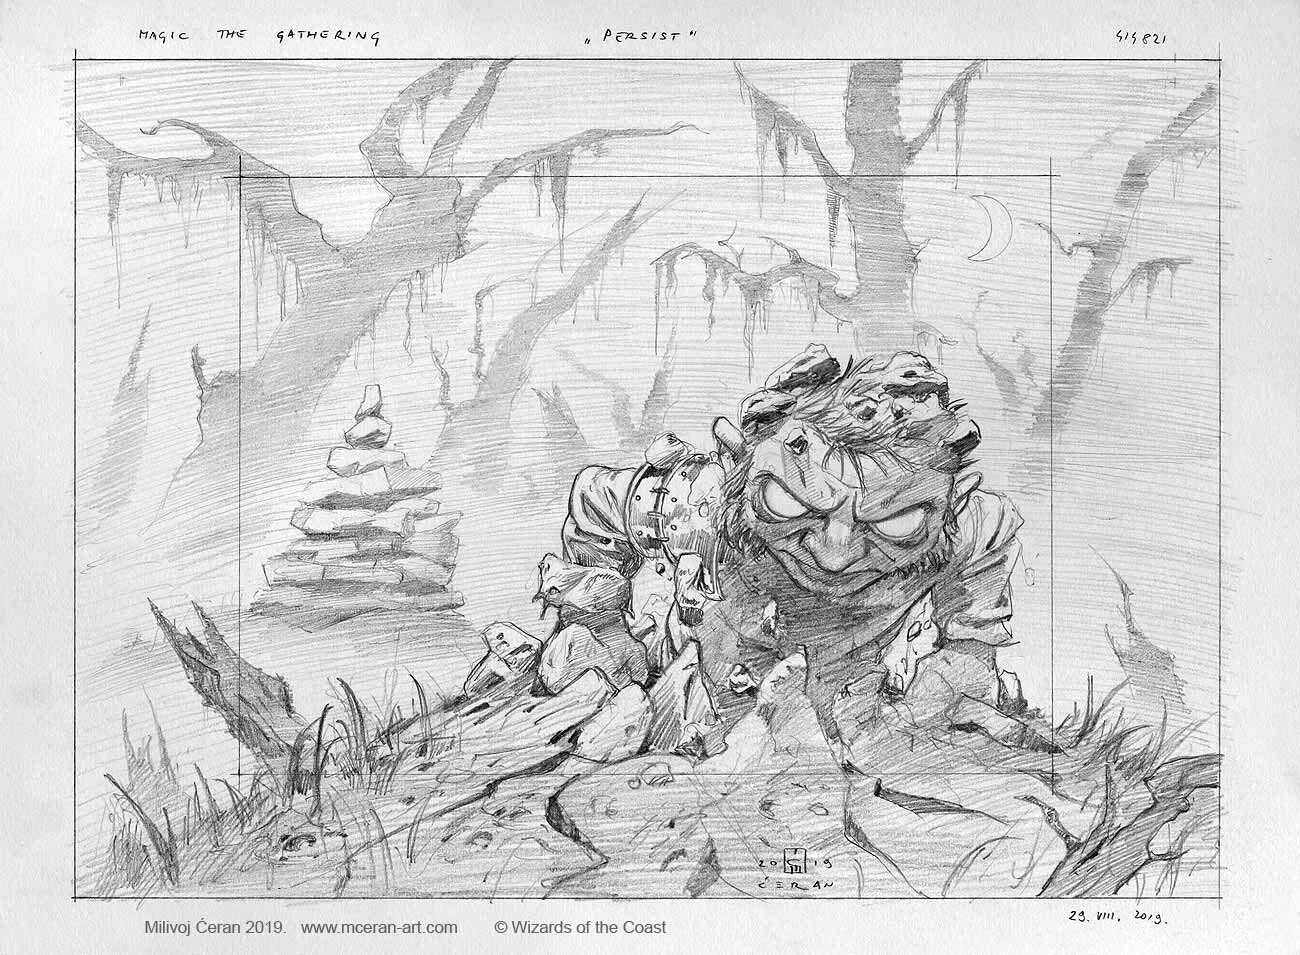 """- """"Persist"""" sketch, Milivoj Ćeran 2019. - a-3, size 29,7 x 42 cm (12x16 inches) - pencil on paper - © Wizards of the Coast - AD Cynthia Sheppard - """"Modern Horizons 2"""" set - private collection"""